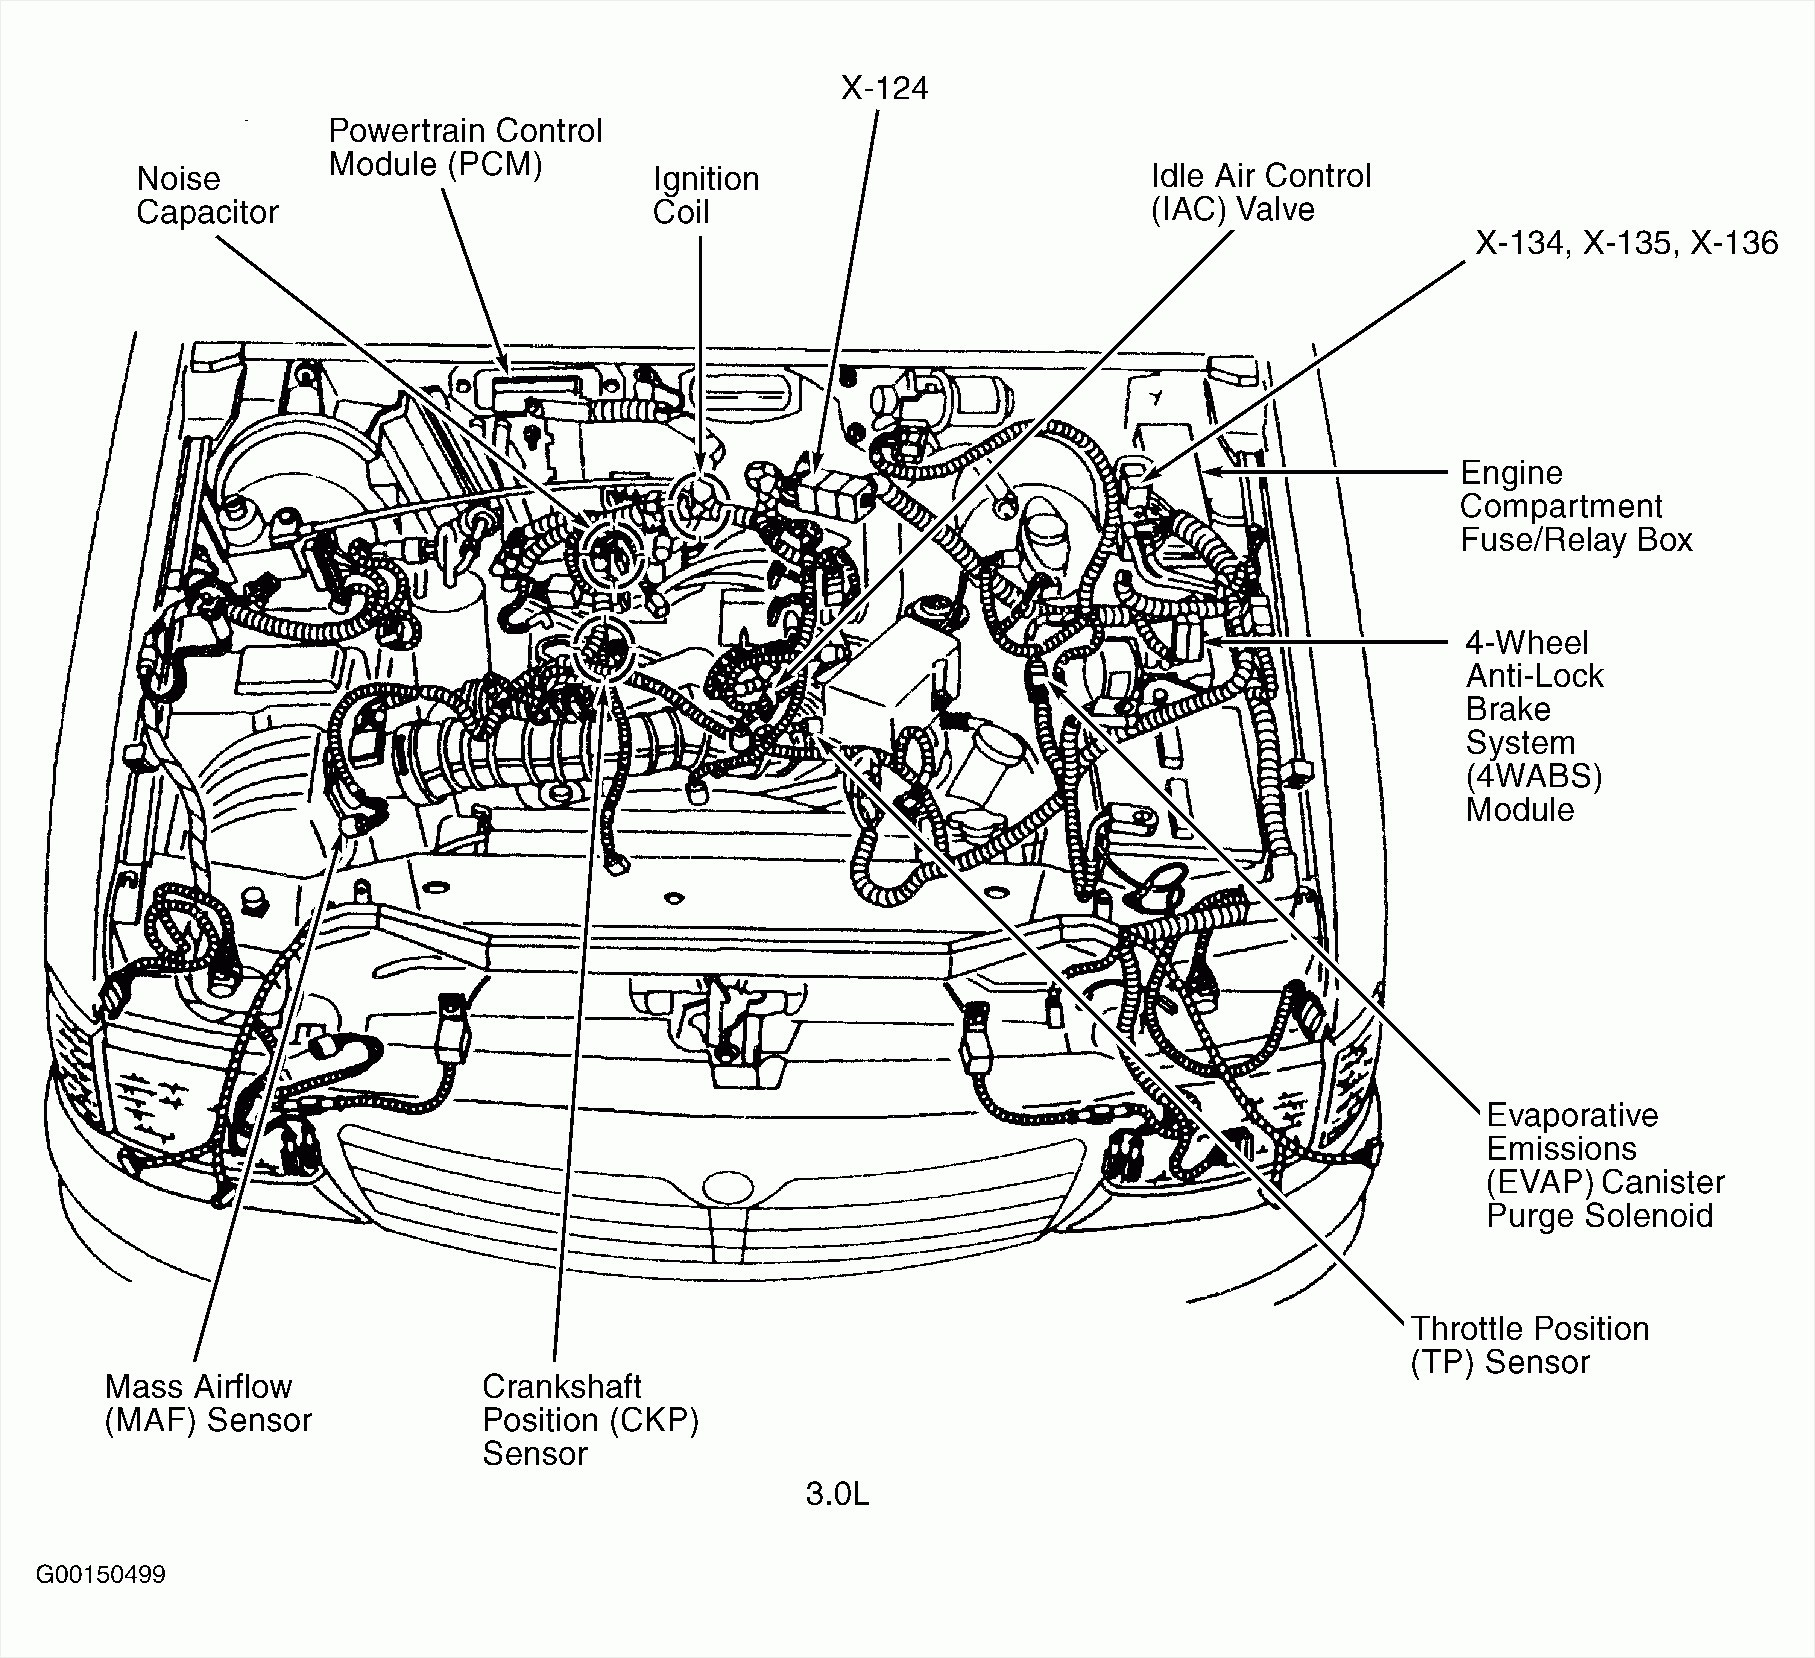 Mazda 3 engine diagram trusted wiring diagrams mazda 3 0 v6 engine diagram cylinder 6 wiring diagram for light rh prestonfarmmotors co 2005 mazda 3 engine diagram 2006 mazda 3 engine diagram cheapraybanclubmaster Images